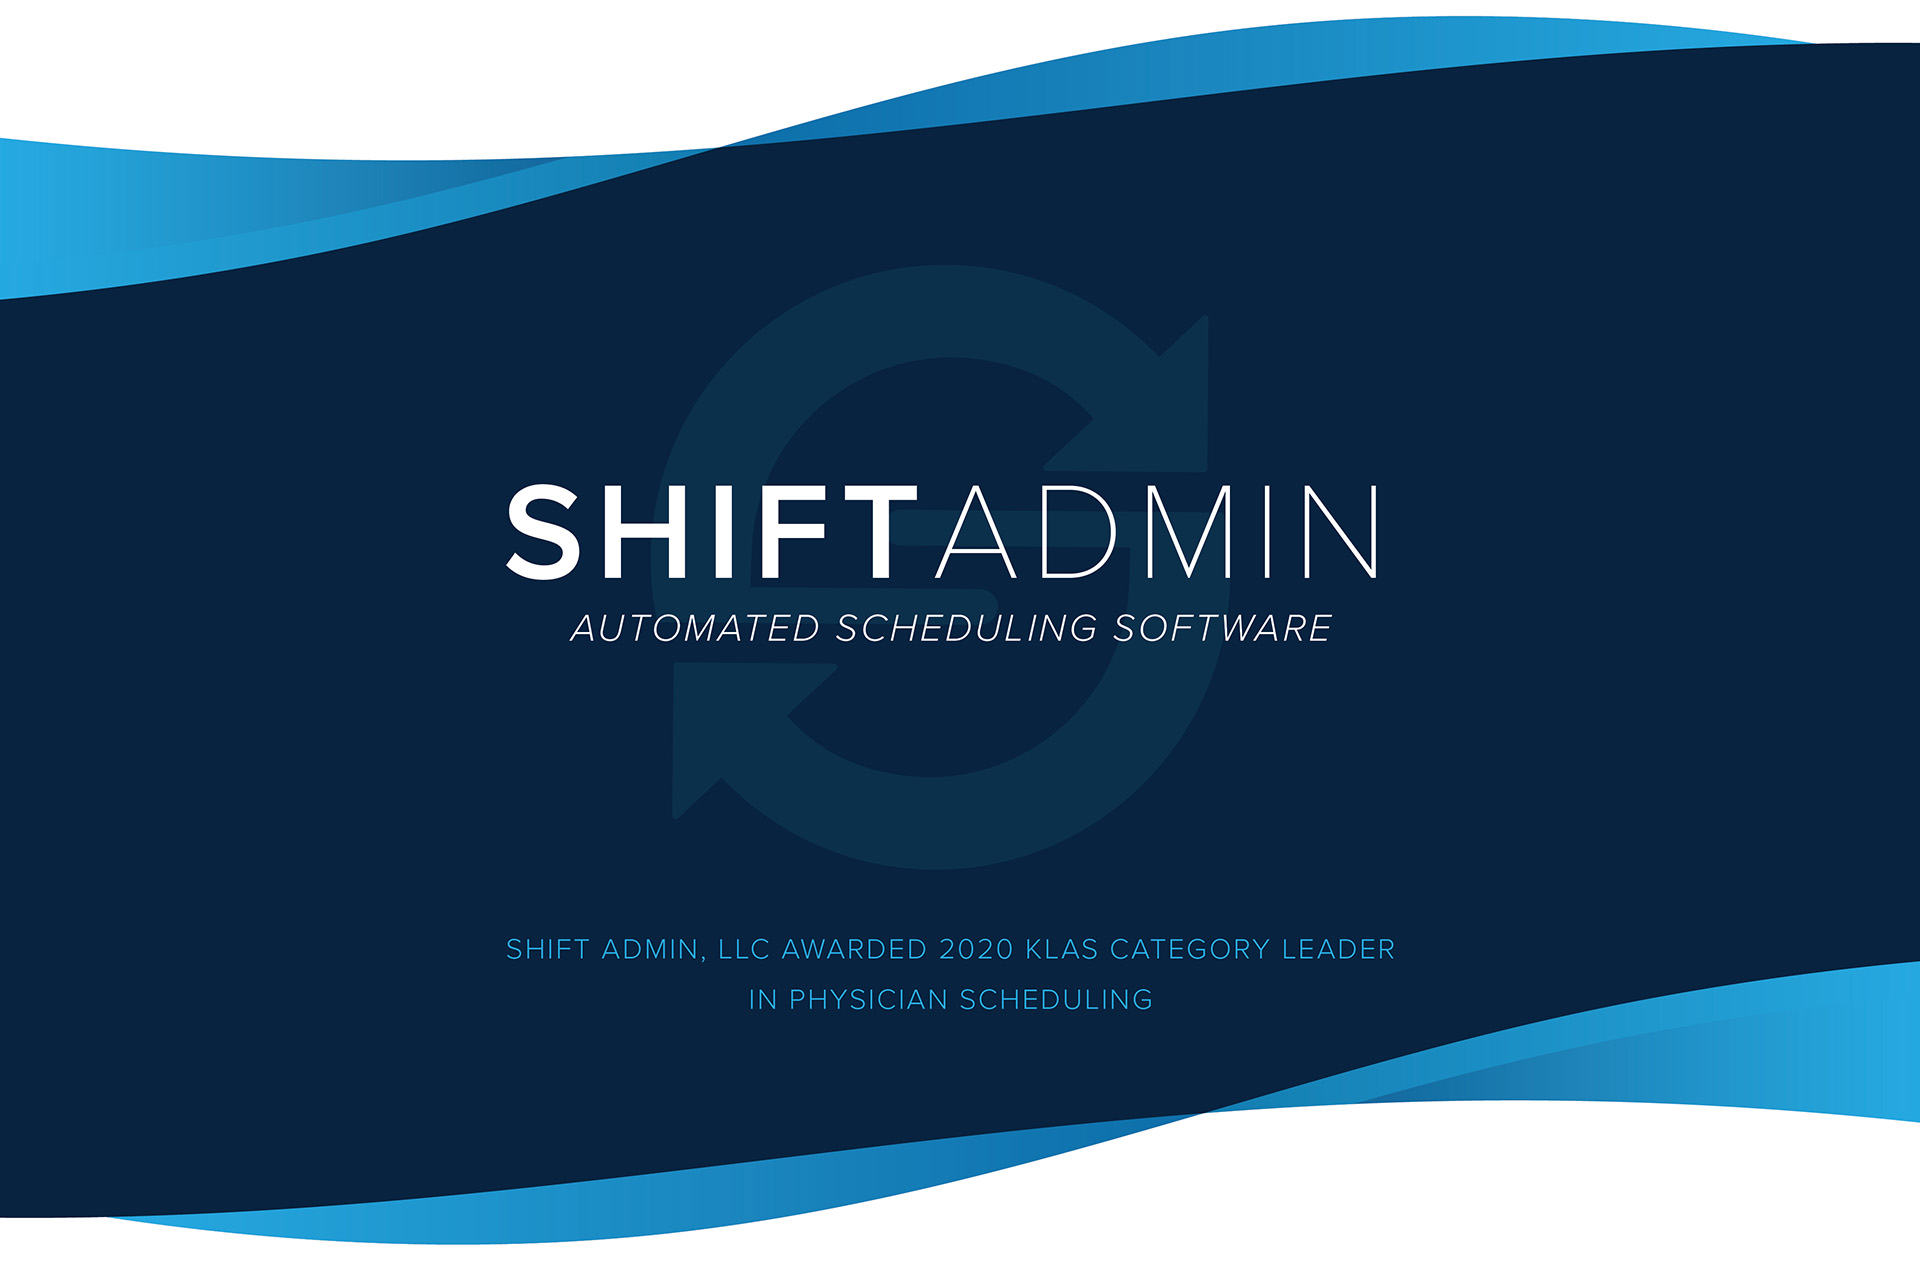 Shift Admin Awarded 2020 KLAS Category Leader in Physician Scheduling